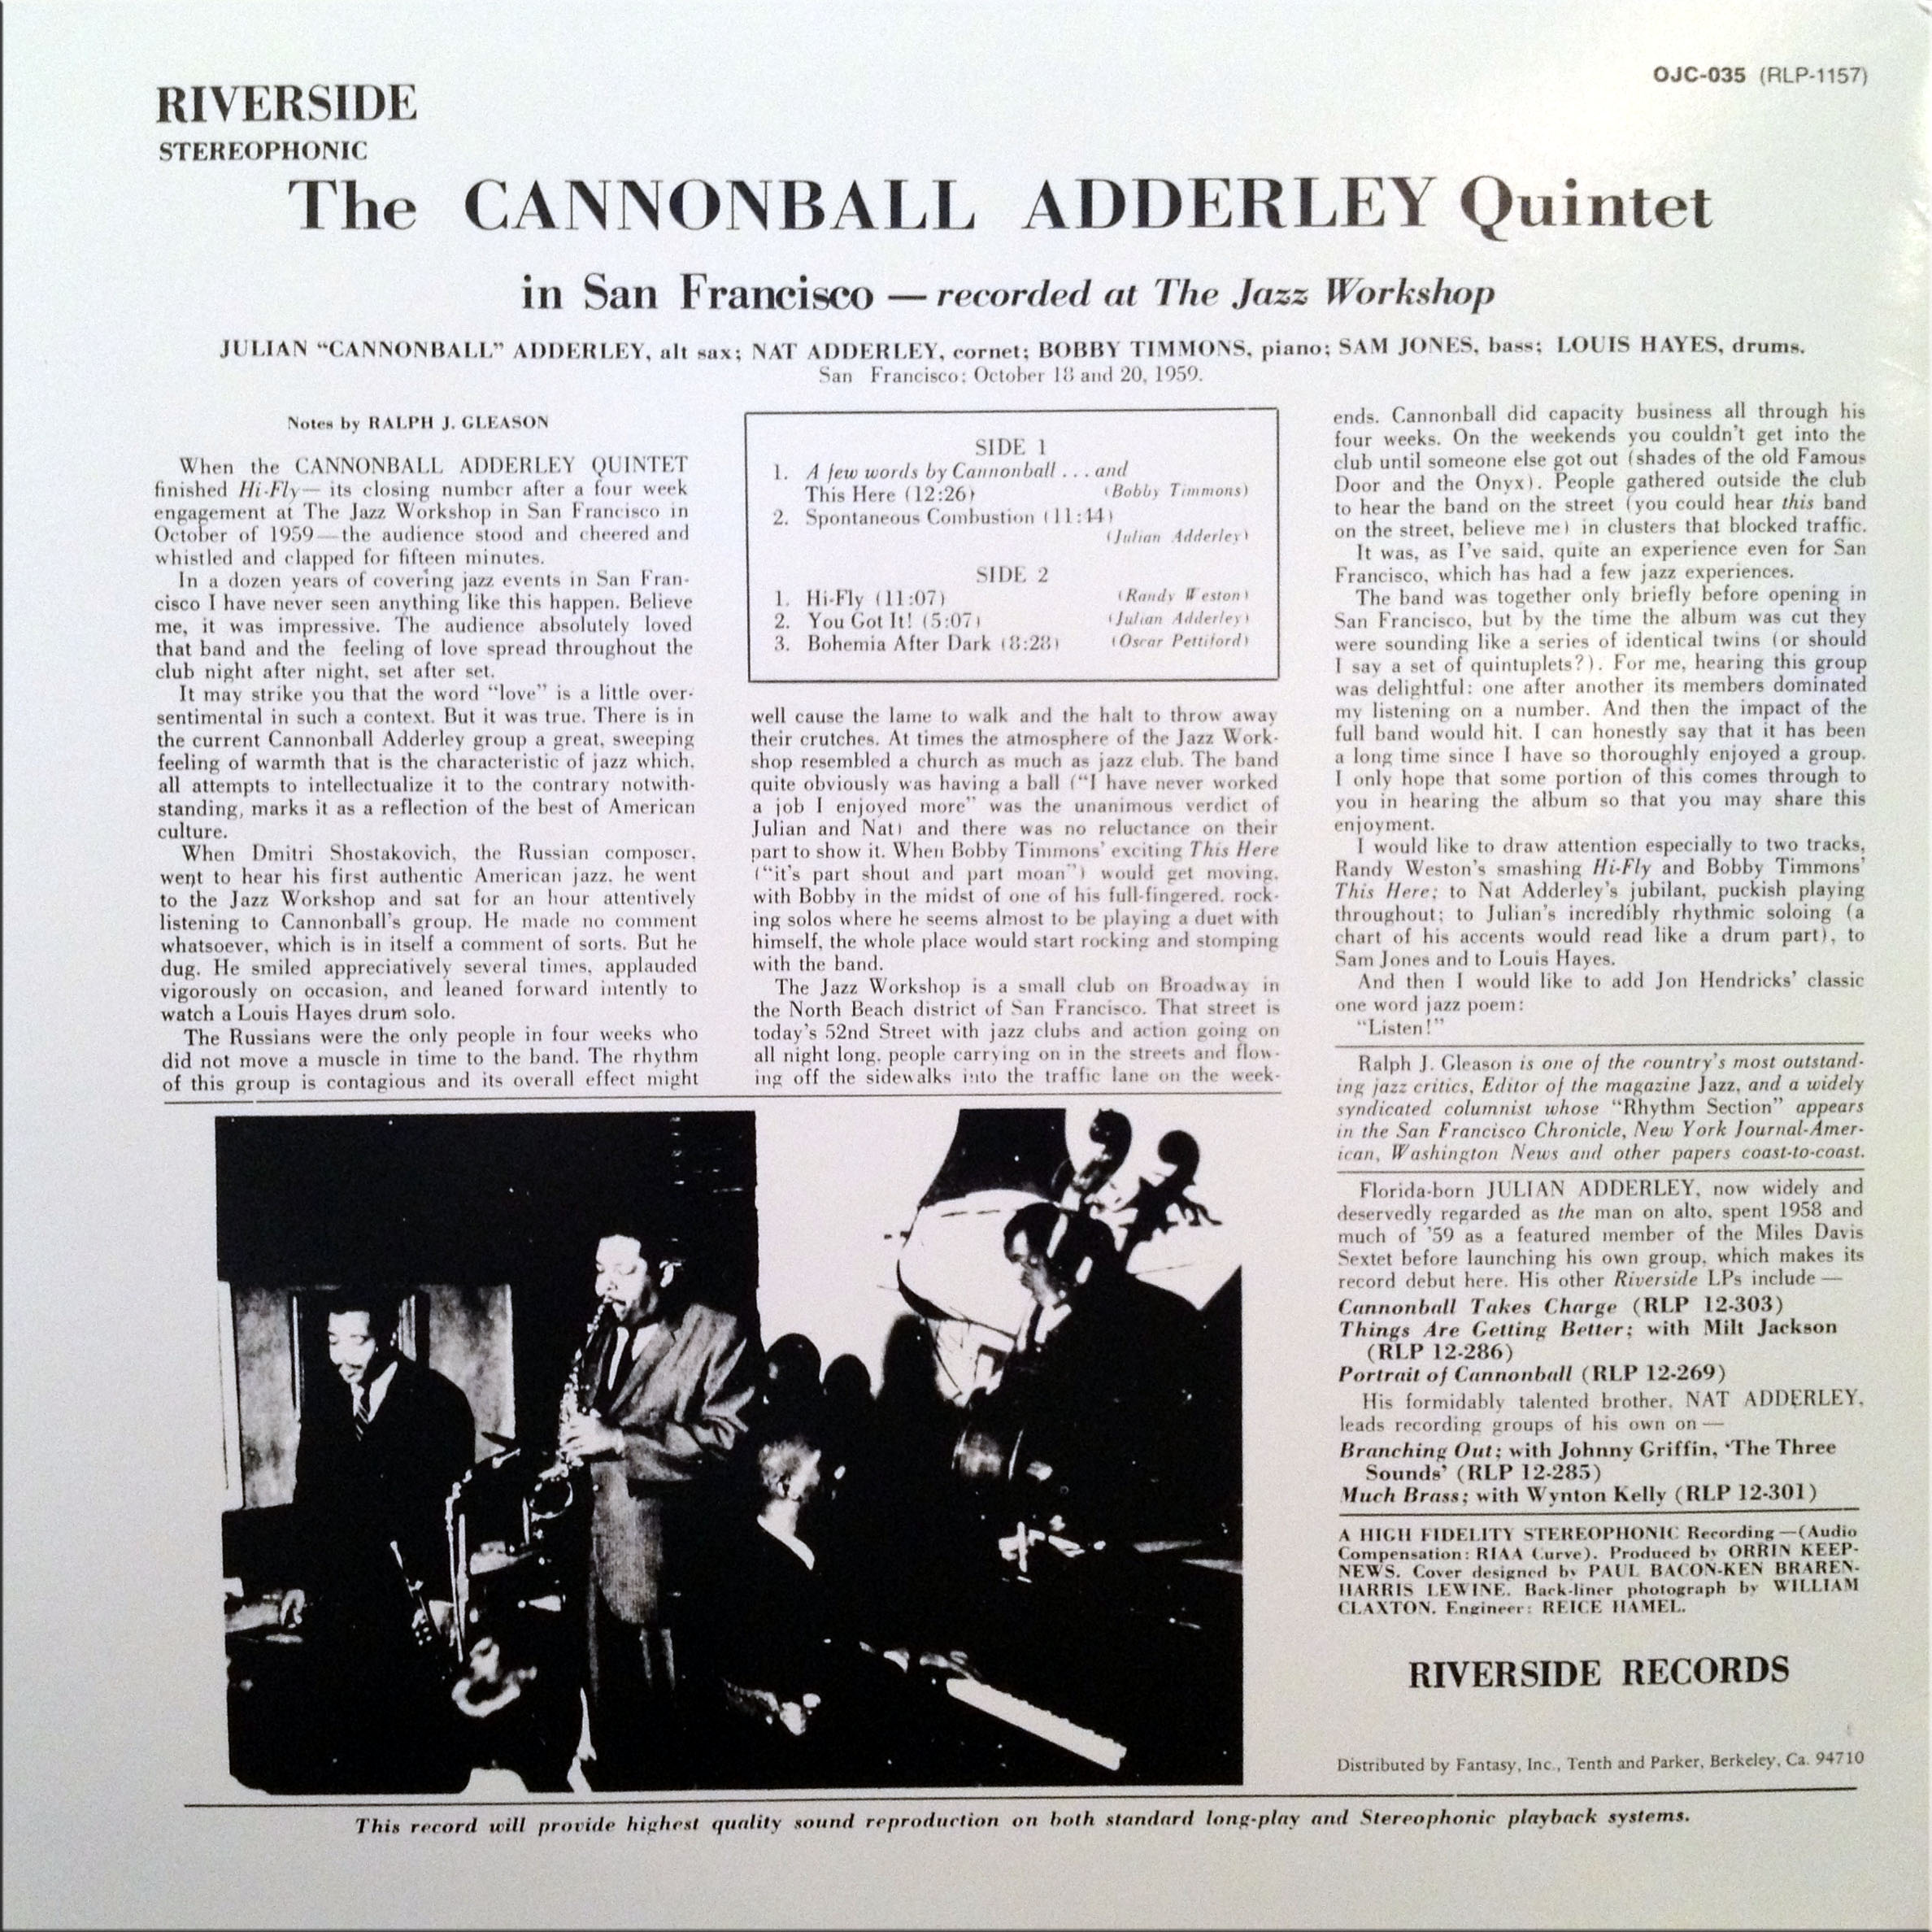 Record Review: The Cannonball Adderley Quintet in San Francisco